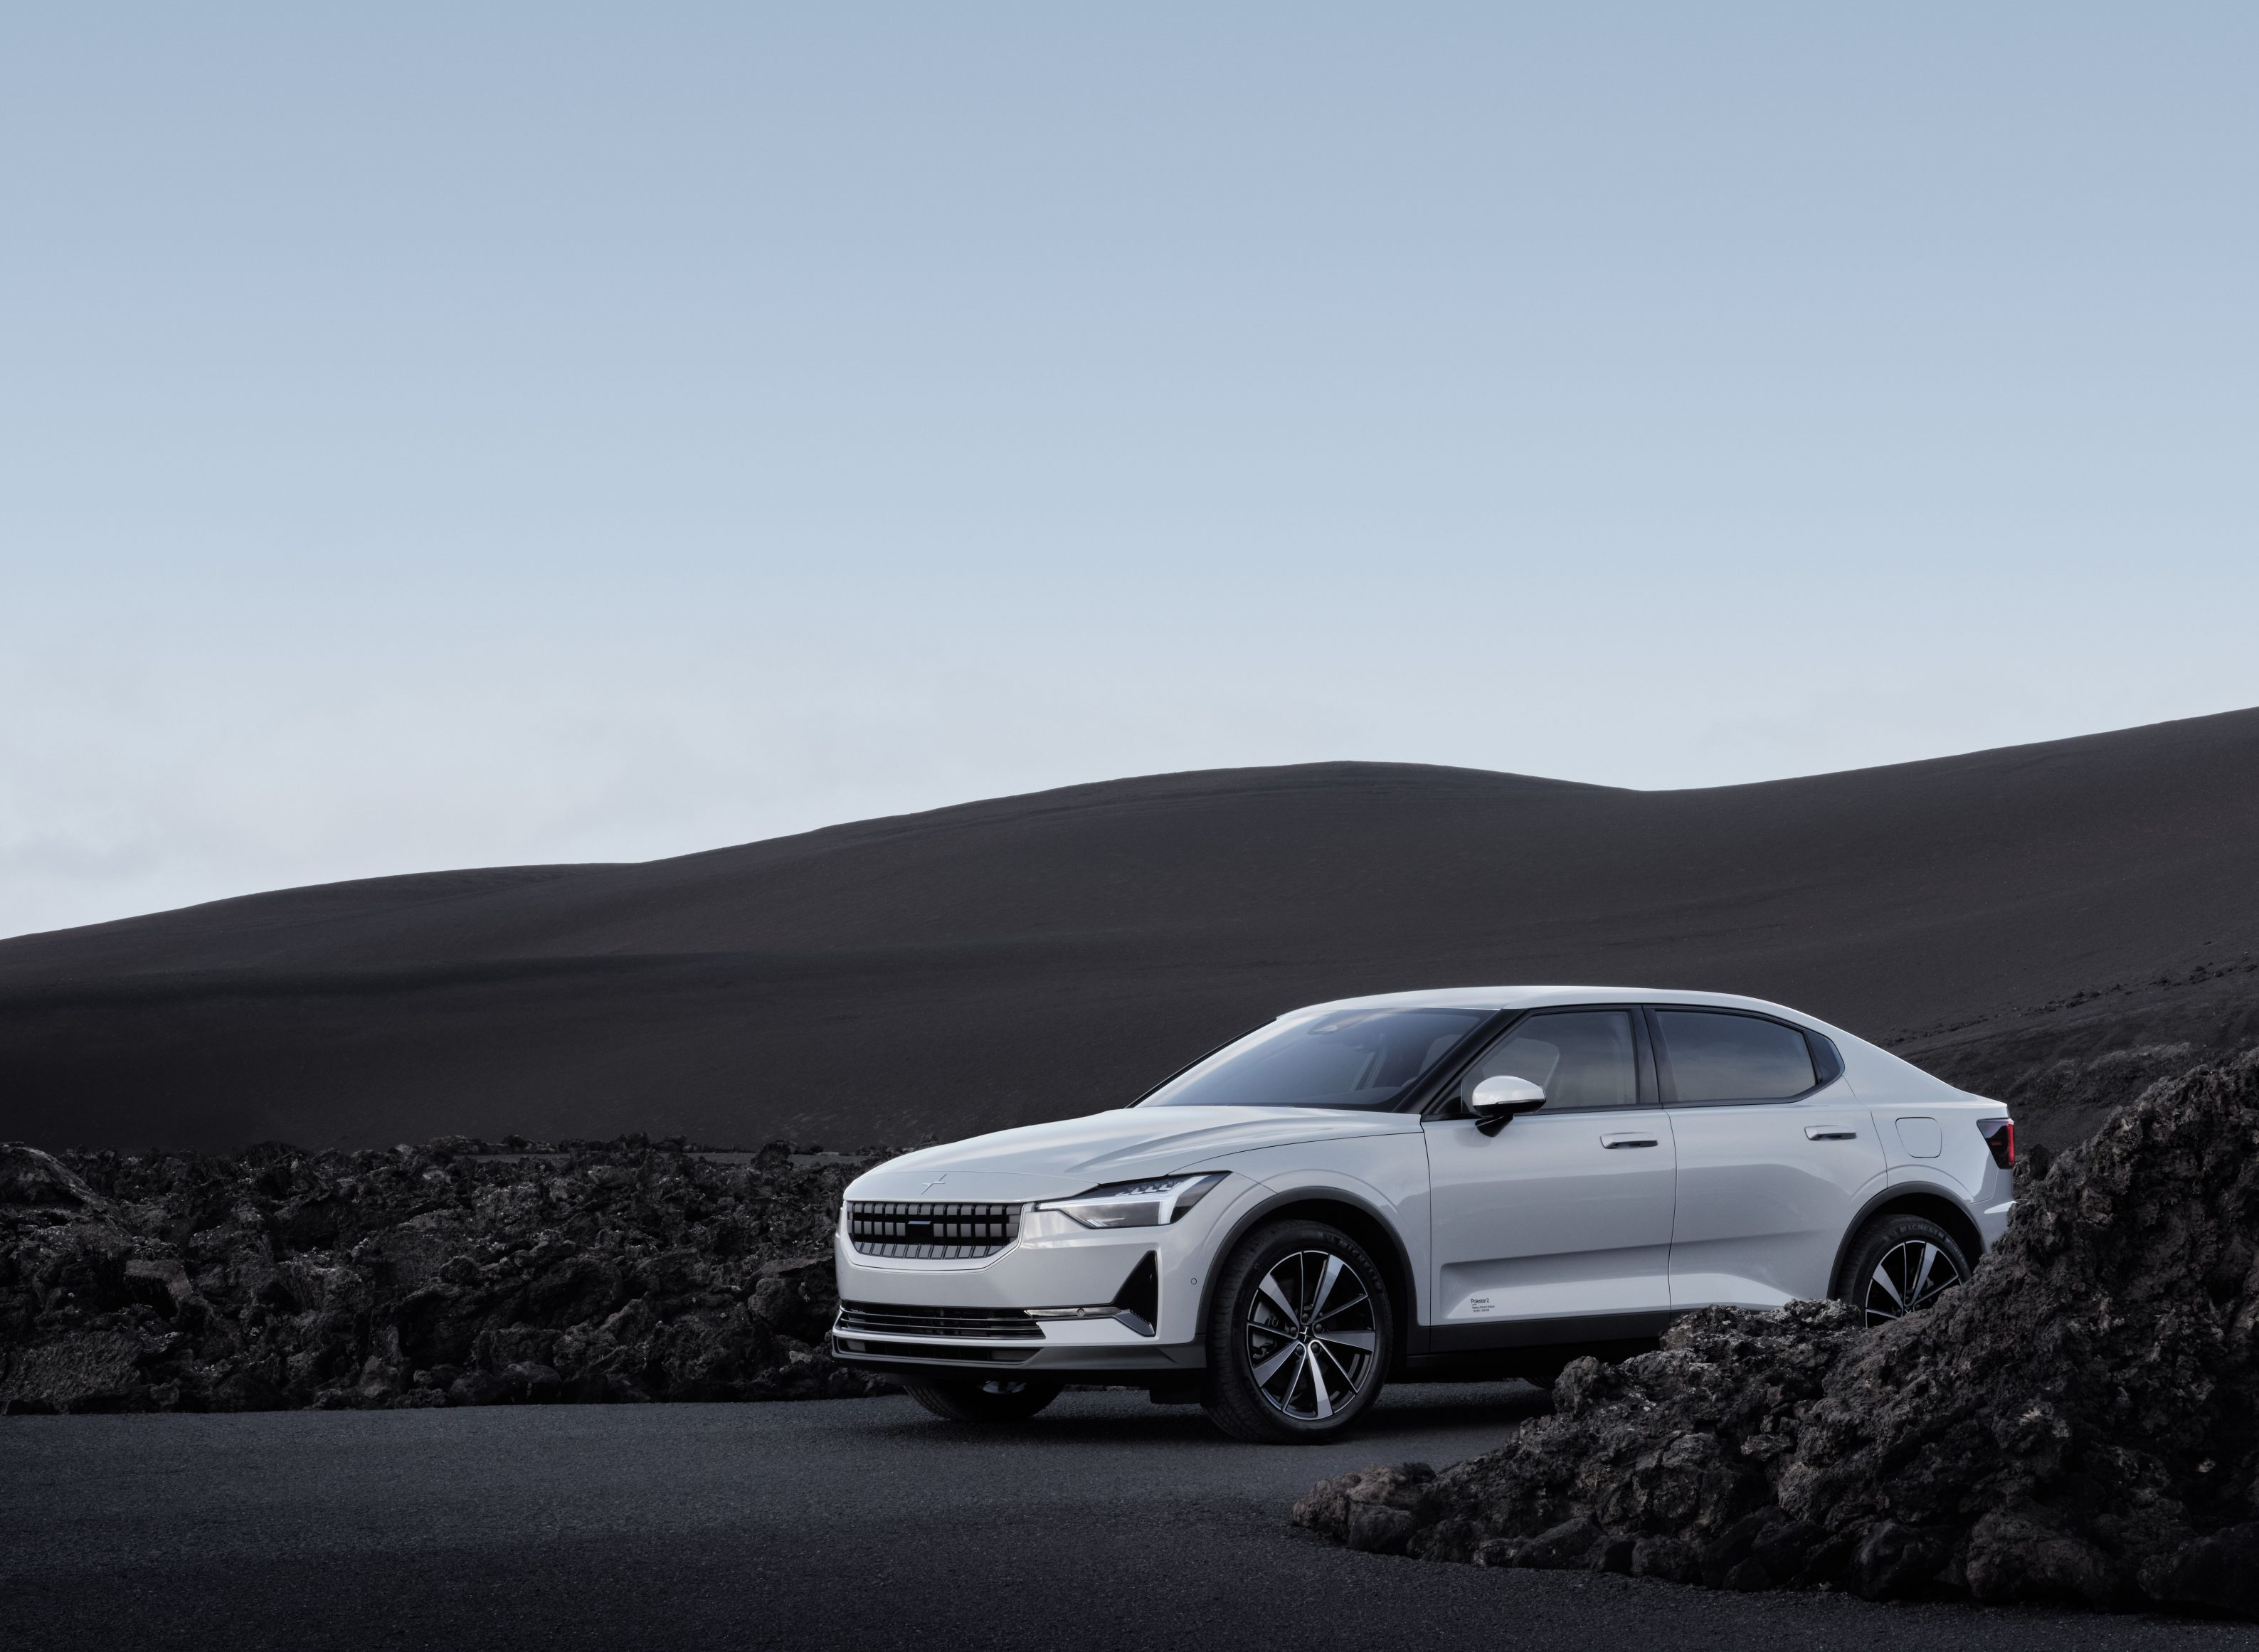 Best electric cars to lease right now - Polestar 2